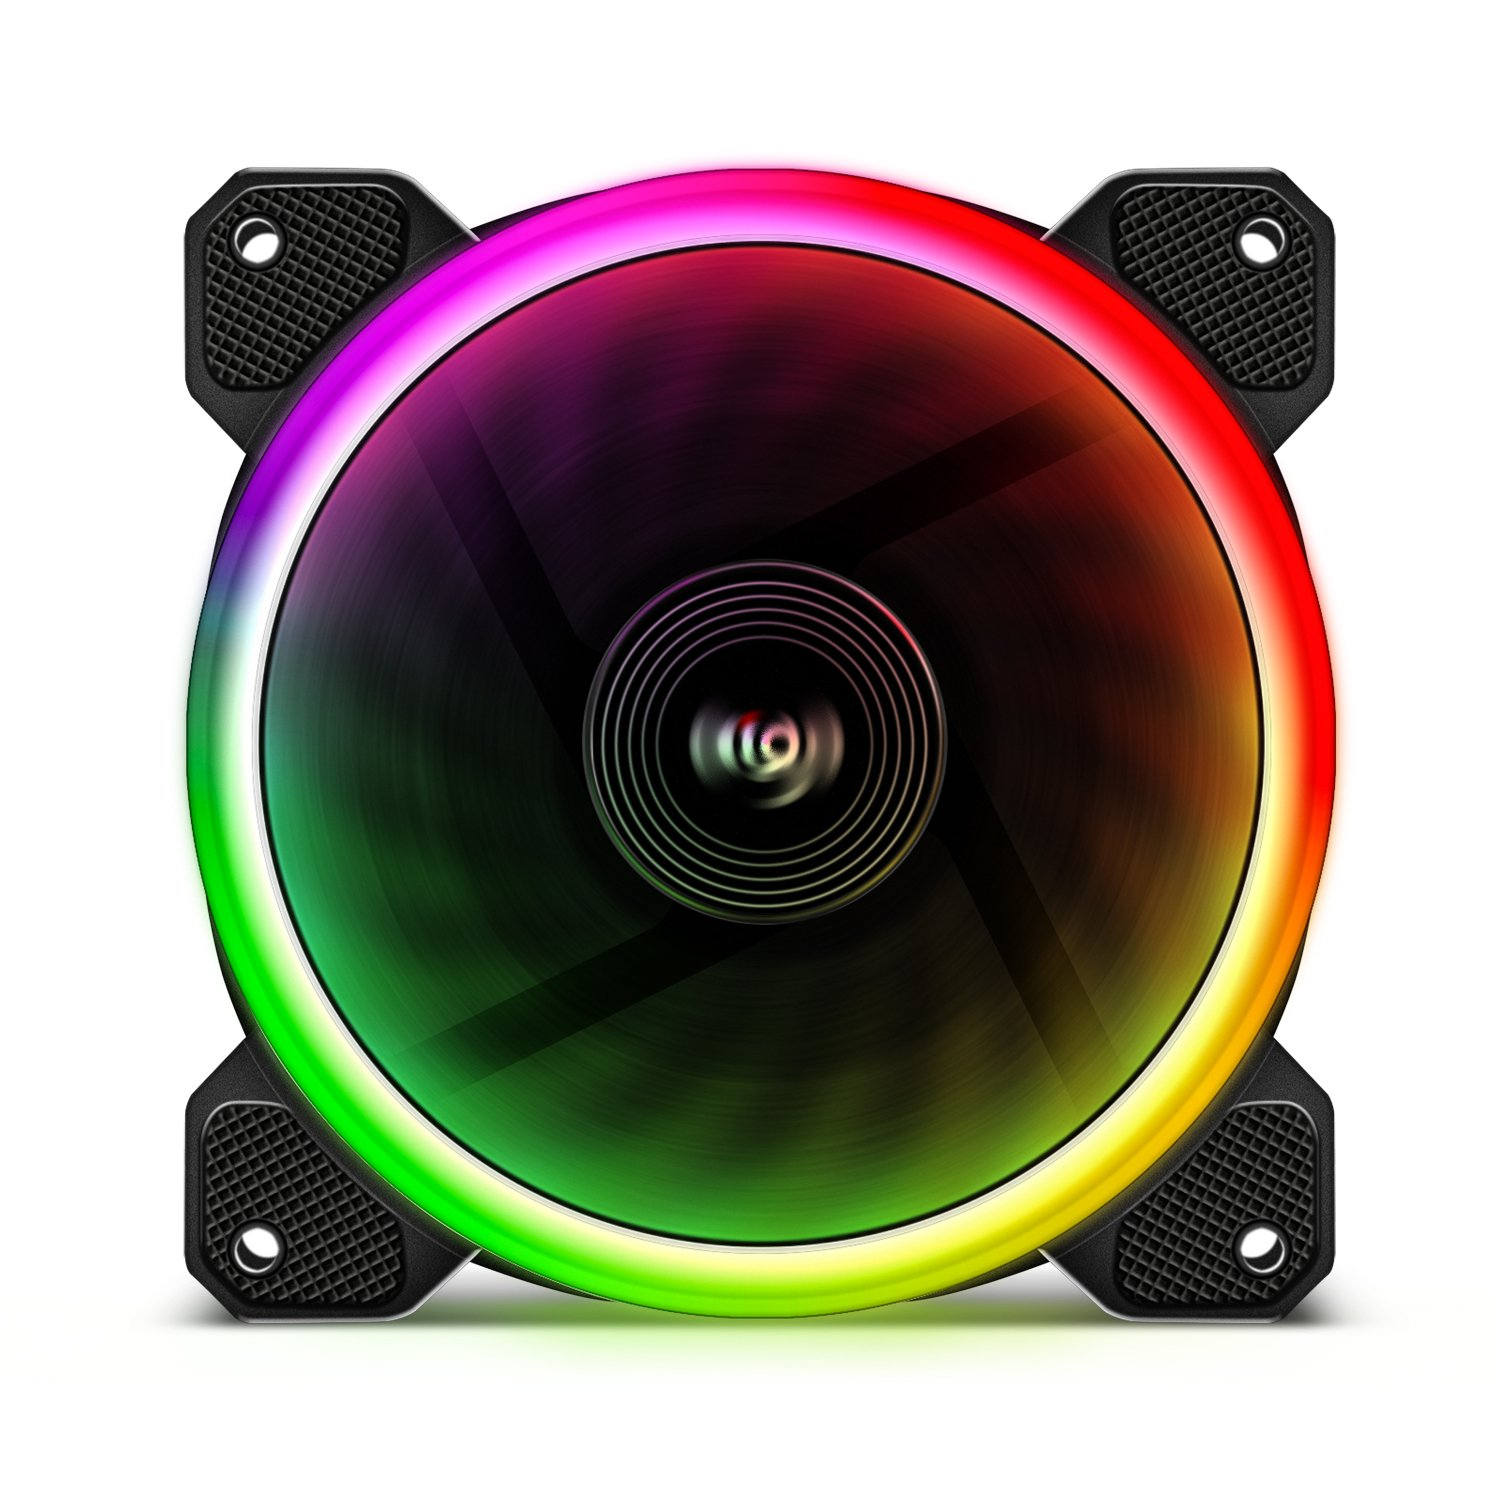 Aigo Aurora DR12 3IN1 Kit Case Fan 3-Pack RGB LED 120mm High Performance High Airflow Adjustable colorful PC CPU Computer Case Cooling Cooler with Controller (DR12 3IN1) by Aigo (Image #7)